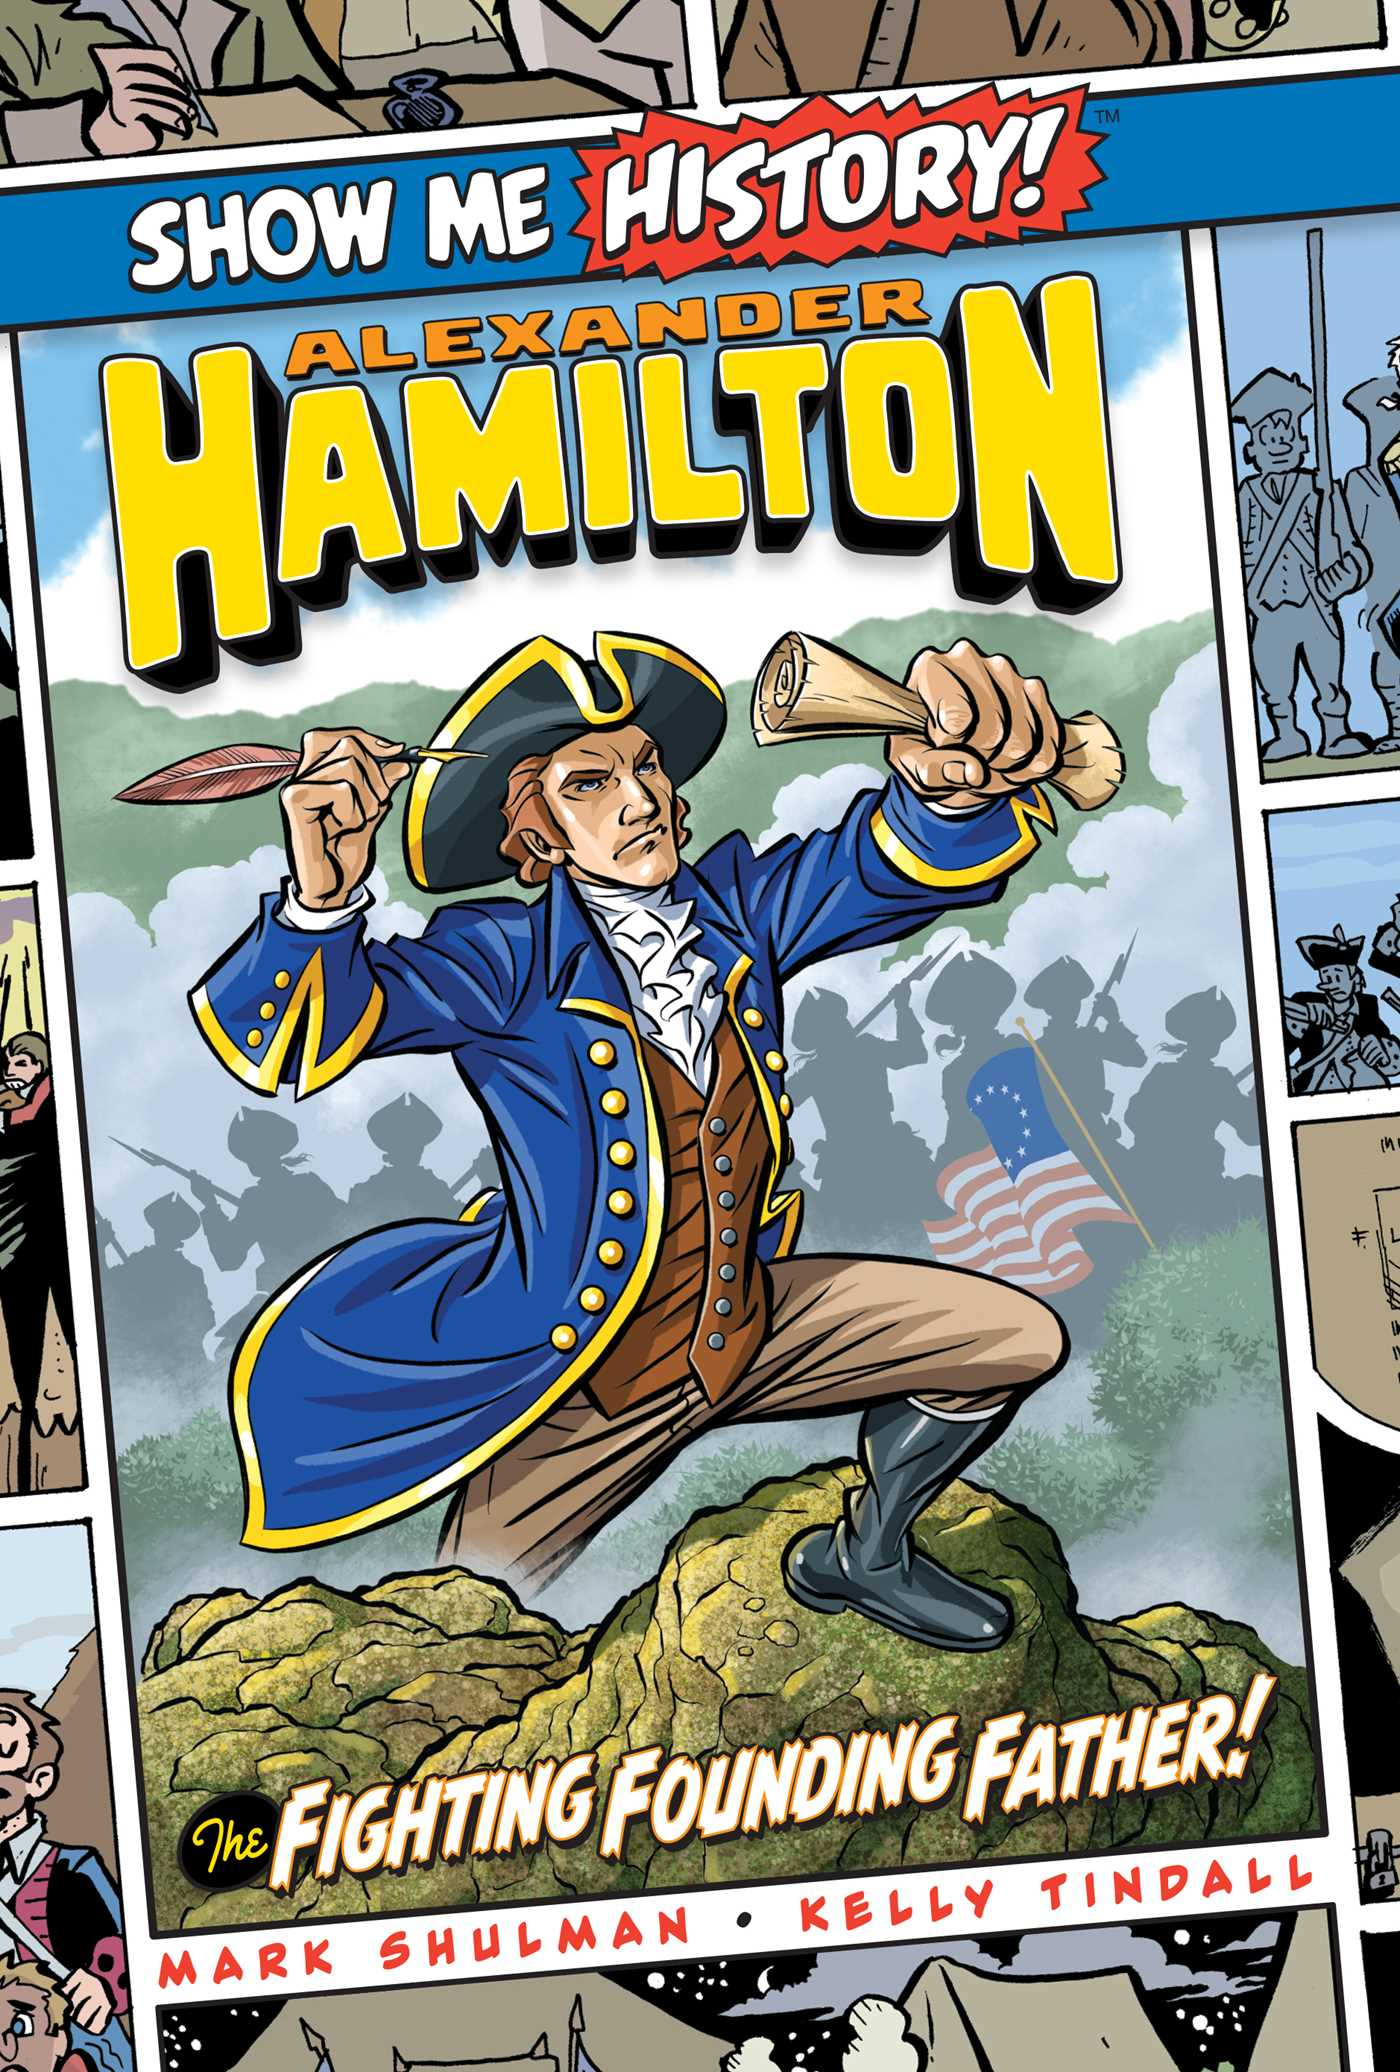 Alexander hamilton the fighting founding father 9781684127795 hr